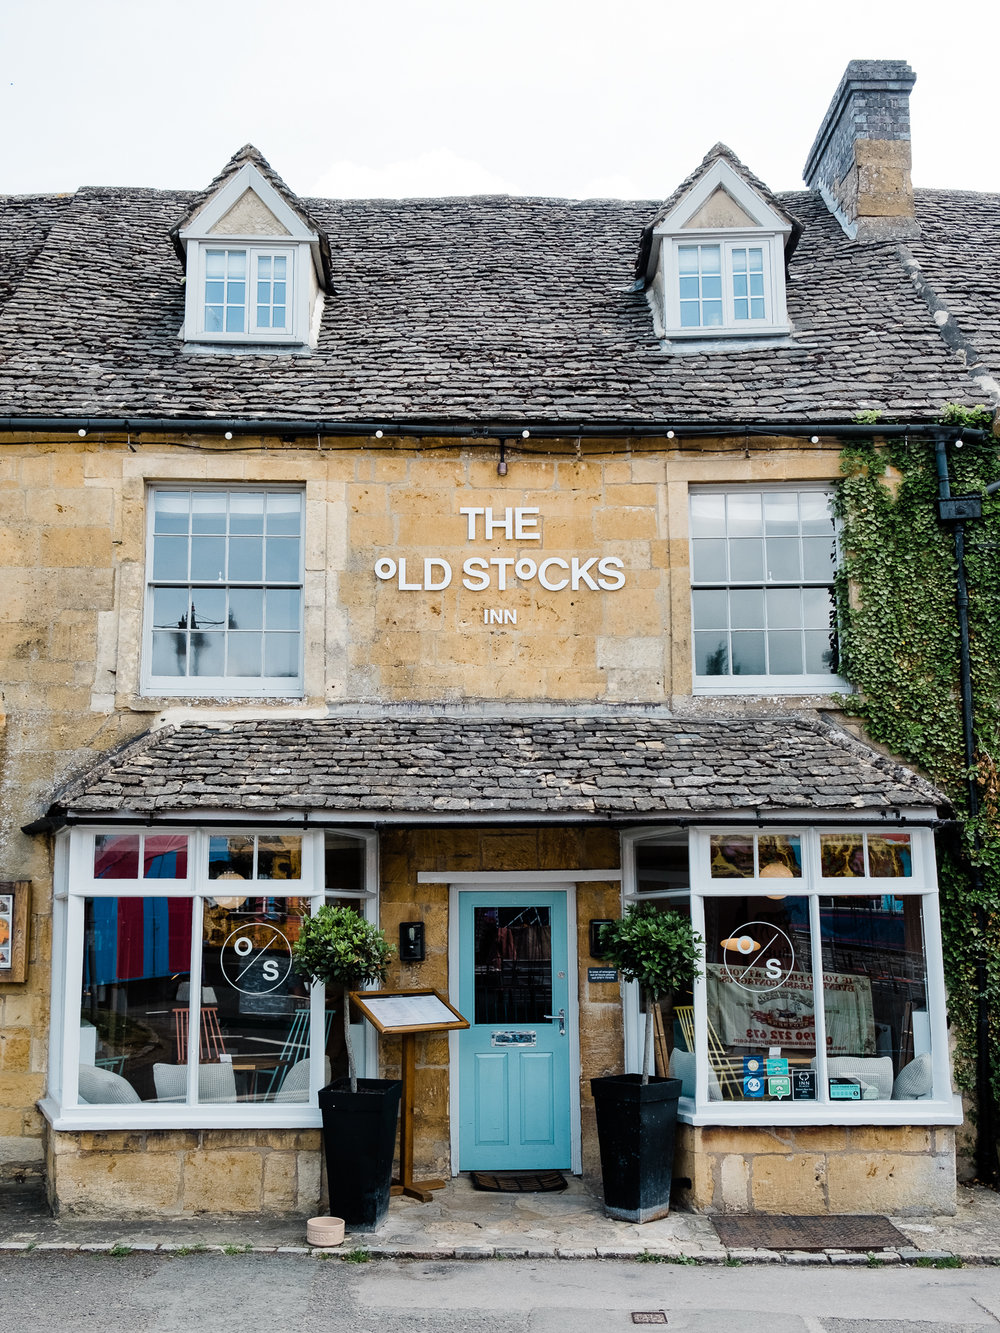 20180615_Cotswolds_Stow-on-the-Wold_DSCF8583.jpg